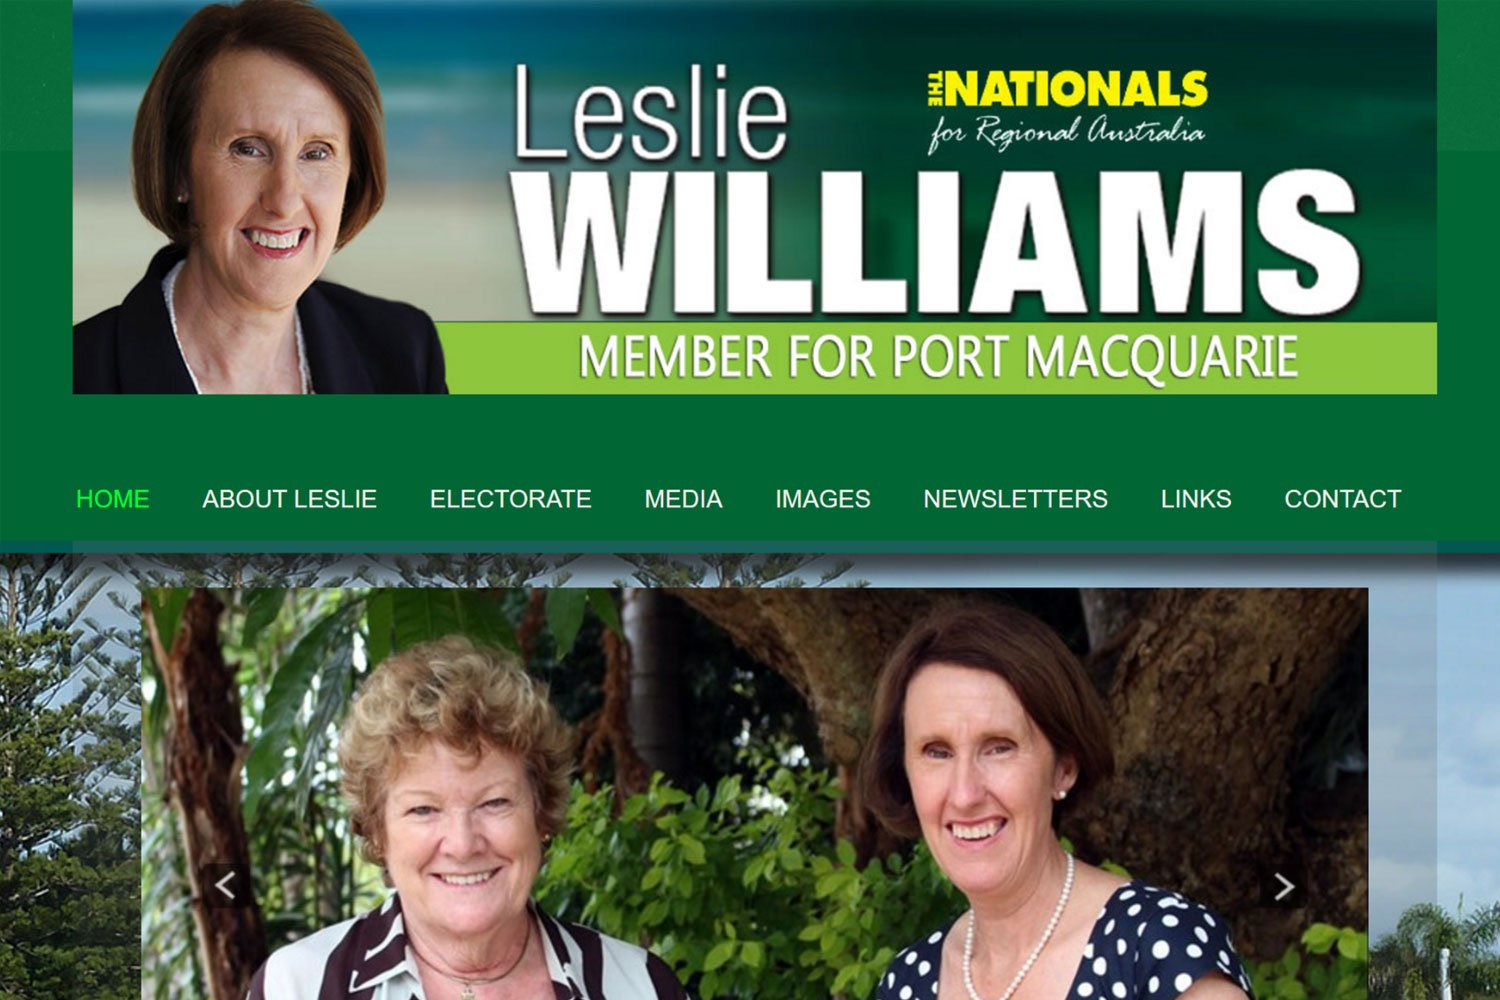 Edgezone Media's Client - Leslie Williams PM - www.LeslieWilliams.com.au